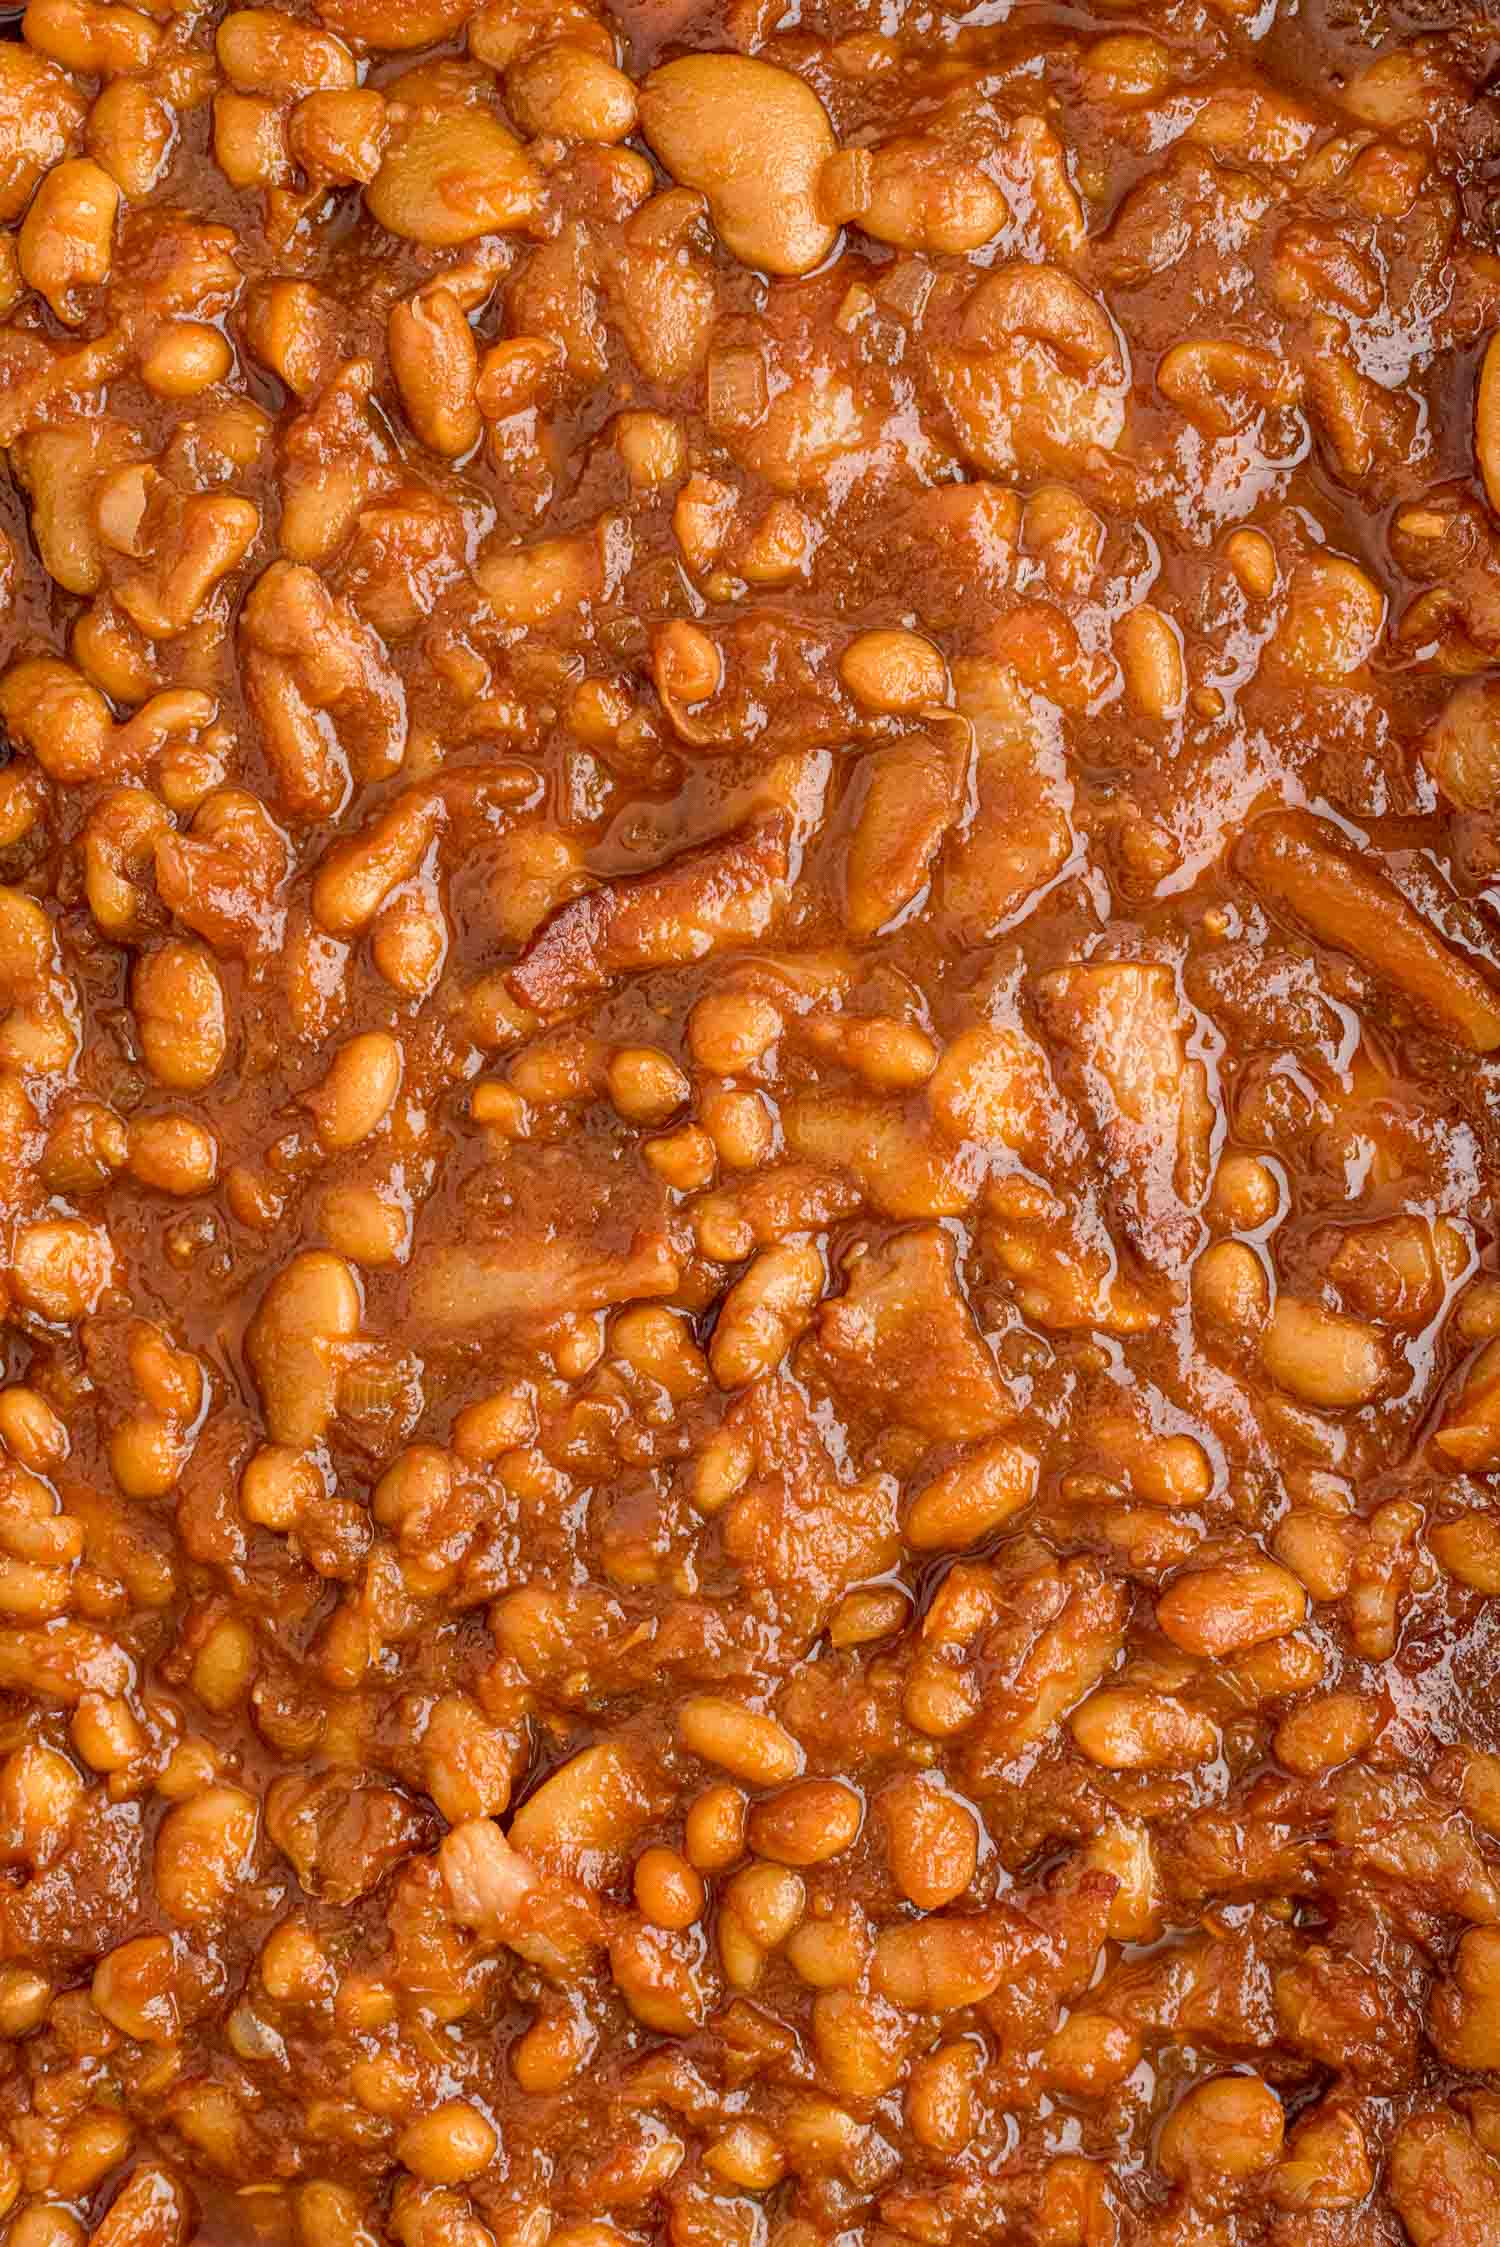 Overhead view of baked beans filling image.